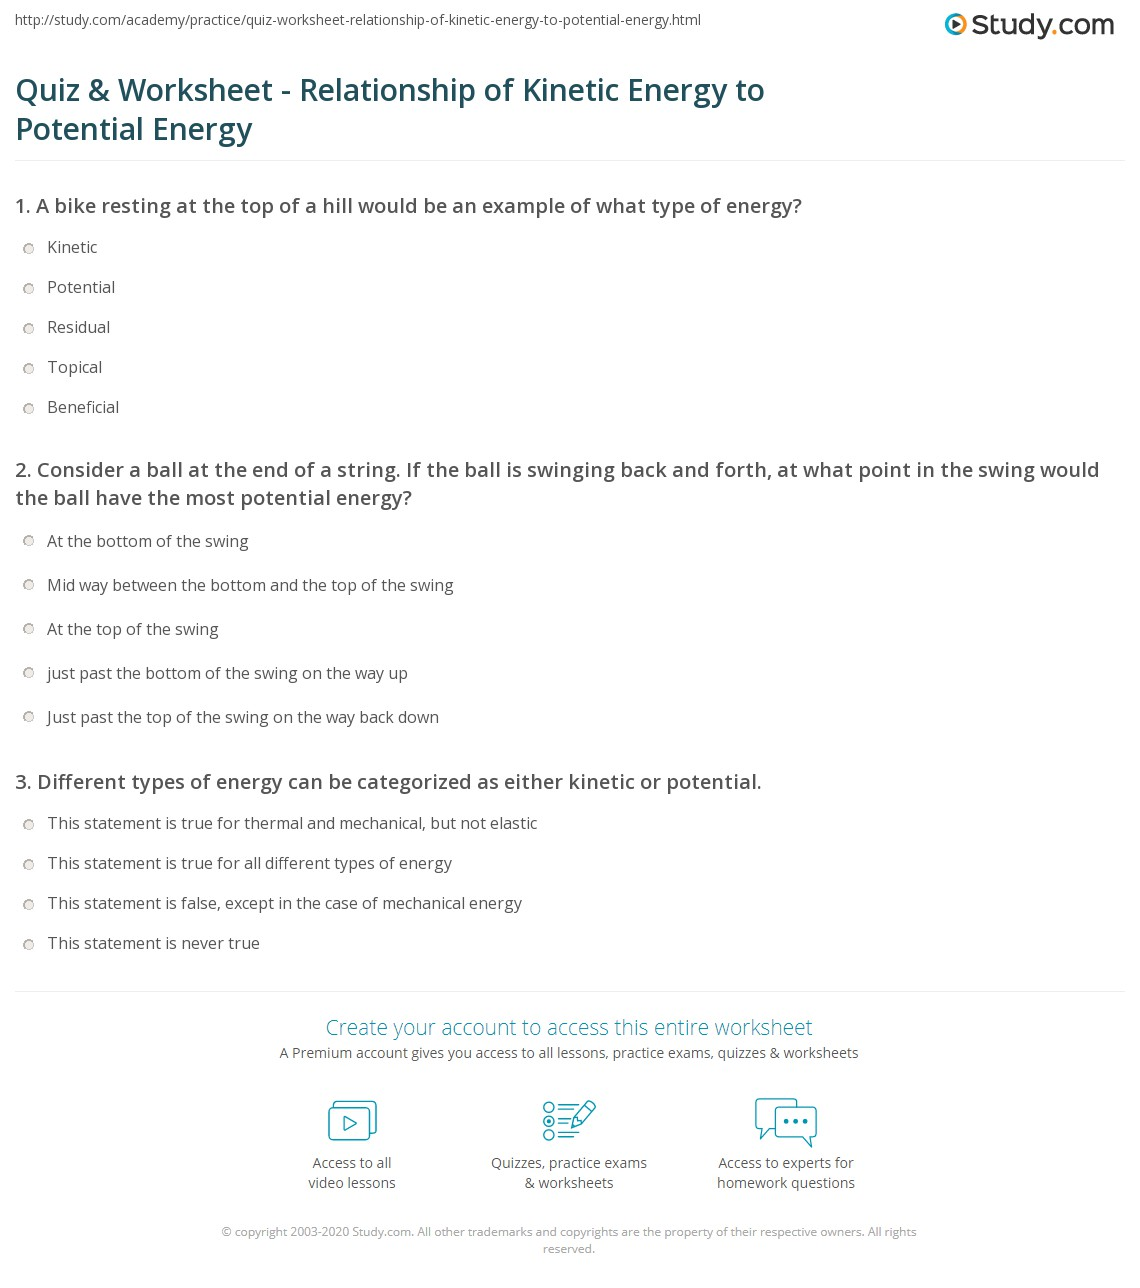 Worksheets Kinetic Energy Worksheet quiz worksheet relationship of kinetic energy to potential print in different types worksheet